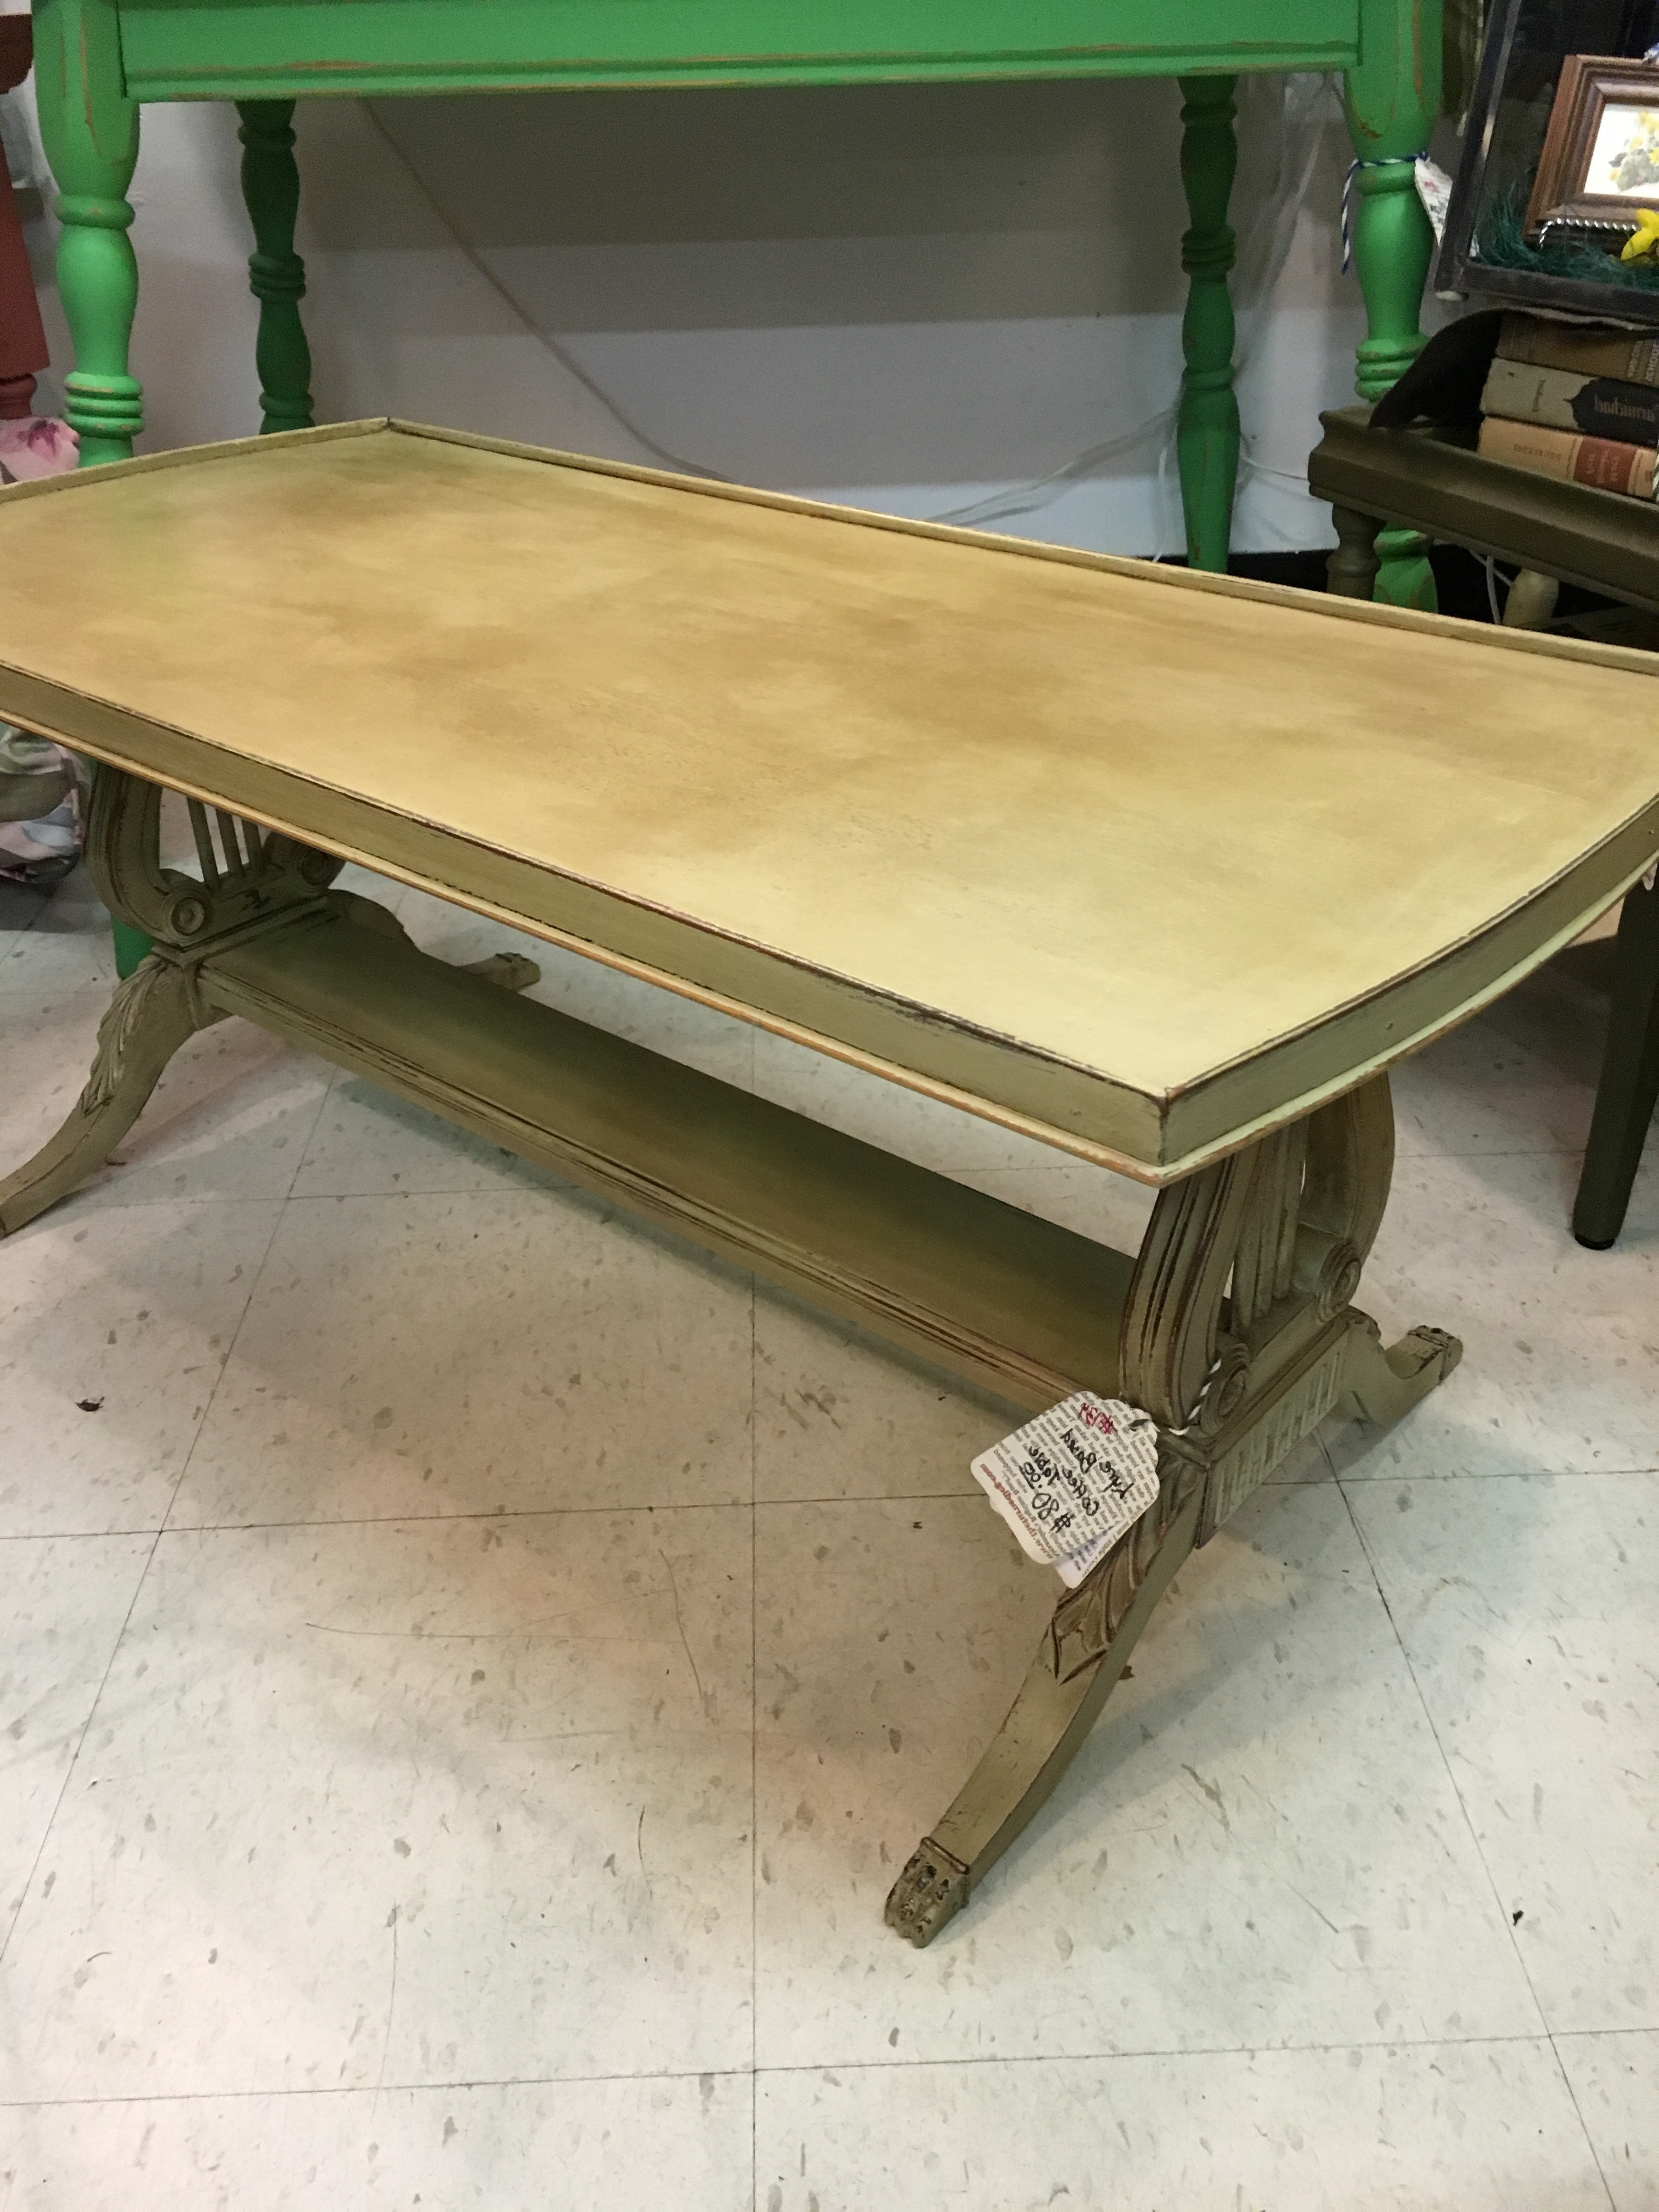 Lyre Based Coffee Table $80 Sold – The Turned Leg For Latest Lyre Coffee Tables (View 9 of 20)